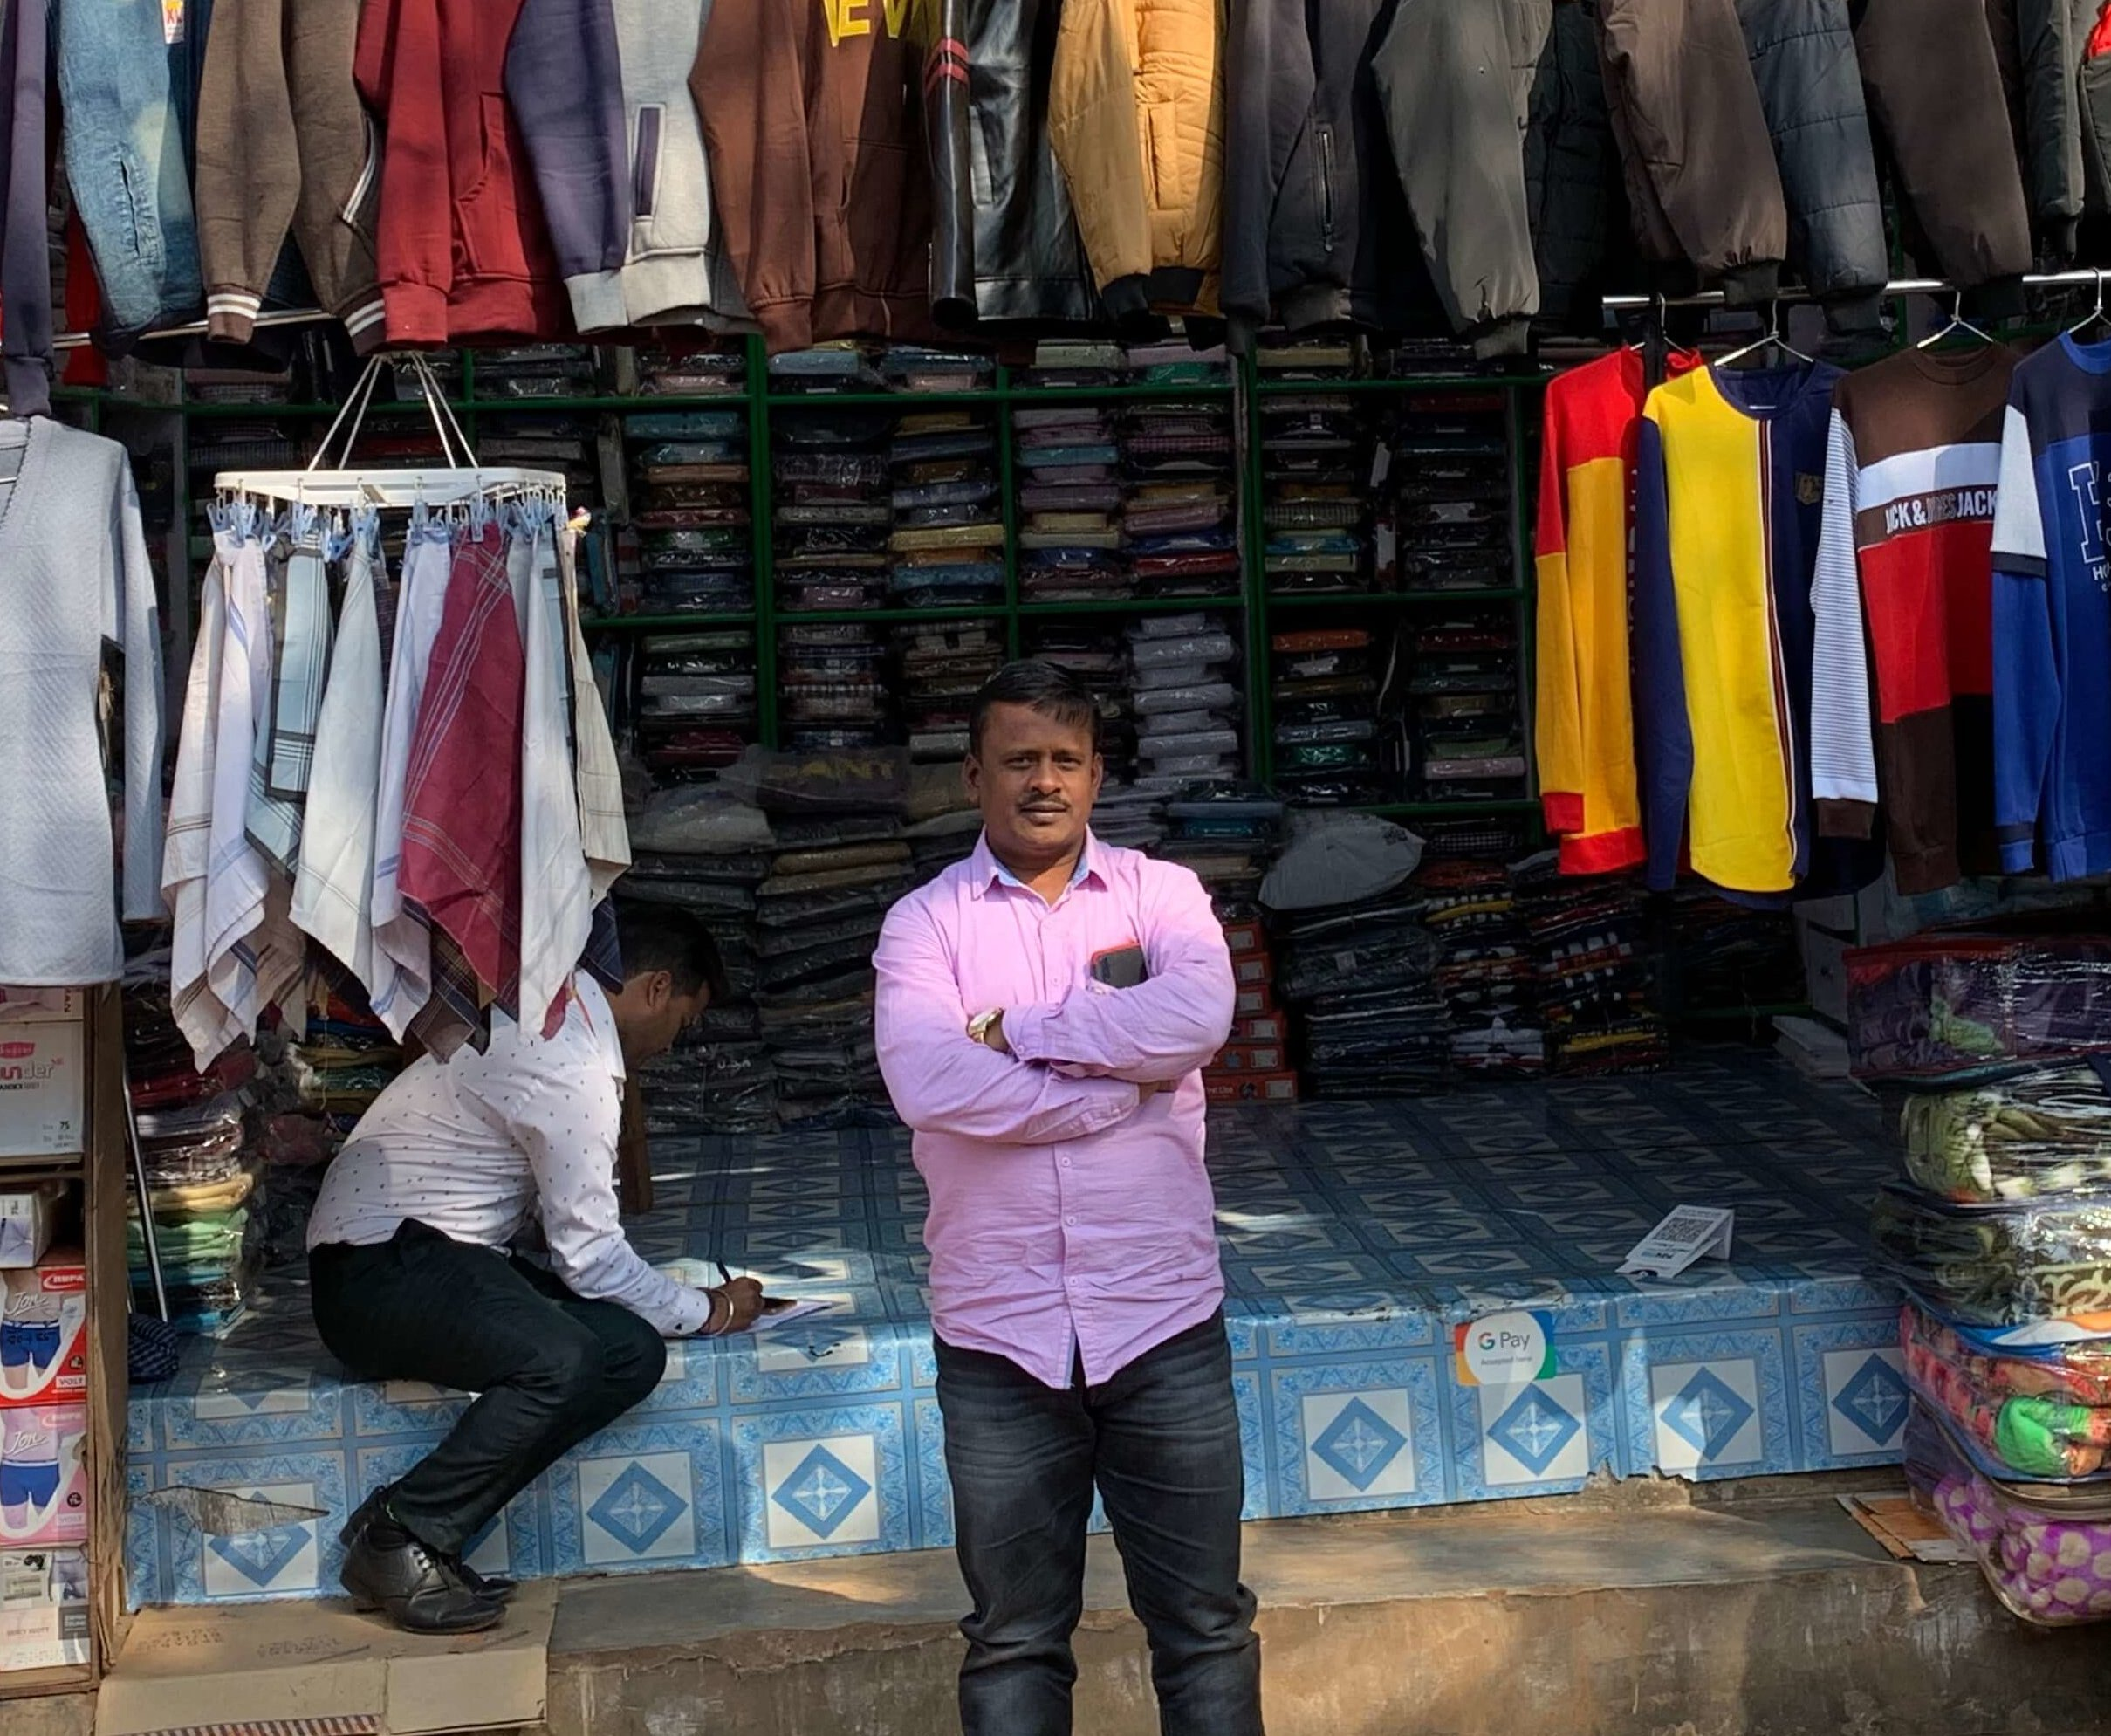 Mohammed Ishaqe and his brother run five clothing stores in the busy market area of Khurda. To know which products to stock, he follows the latest trends in the market. He currently has two loans from Annapurna Finance and another bank, which he used for purchasing items for his businesses from Kolkata. He accepts digital payments and uses a handwritten book for sales and purchase records. He is satisfied with the growth he and his family have achieved with the business and hopes to expand his businesses further in the future.